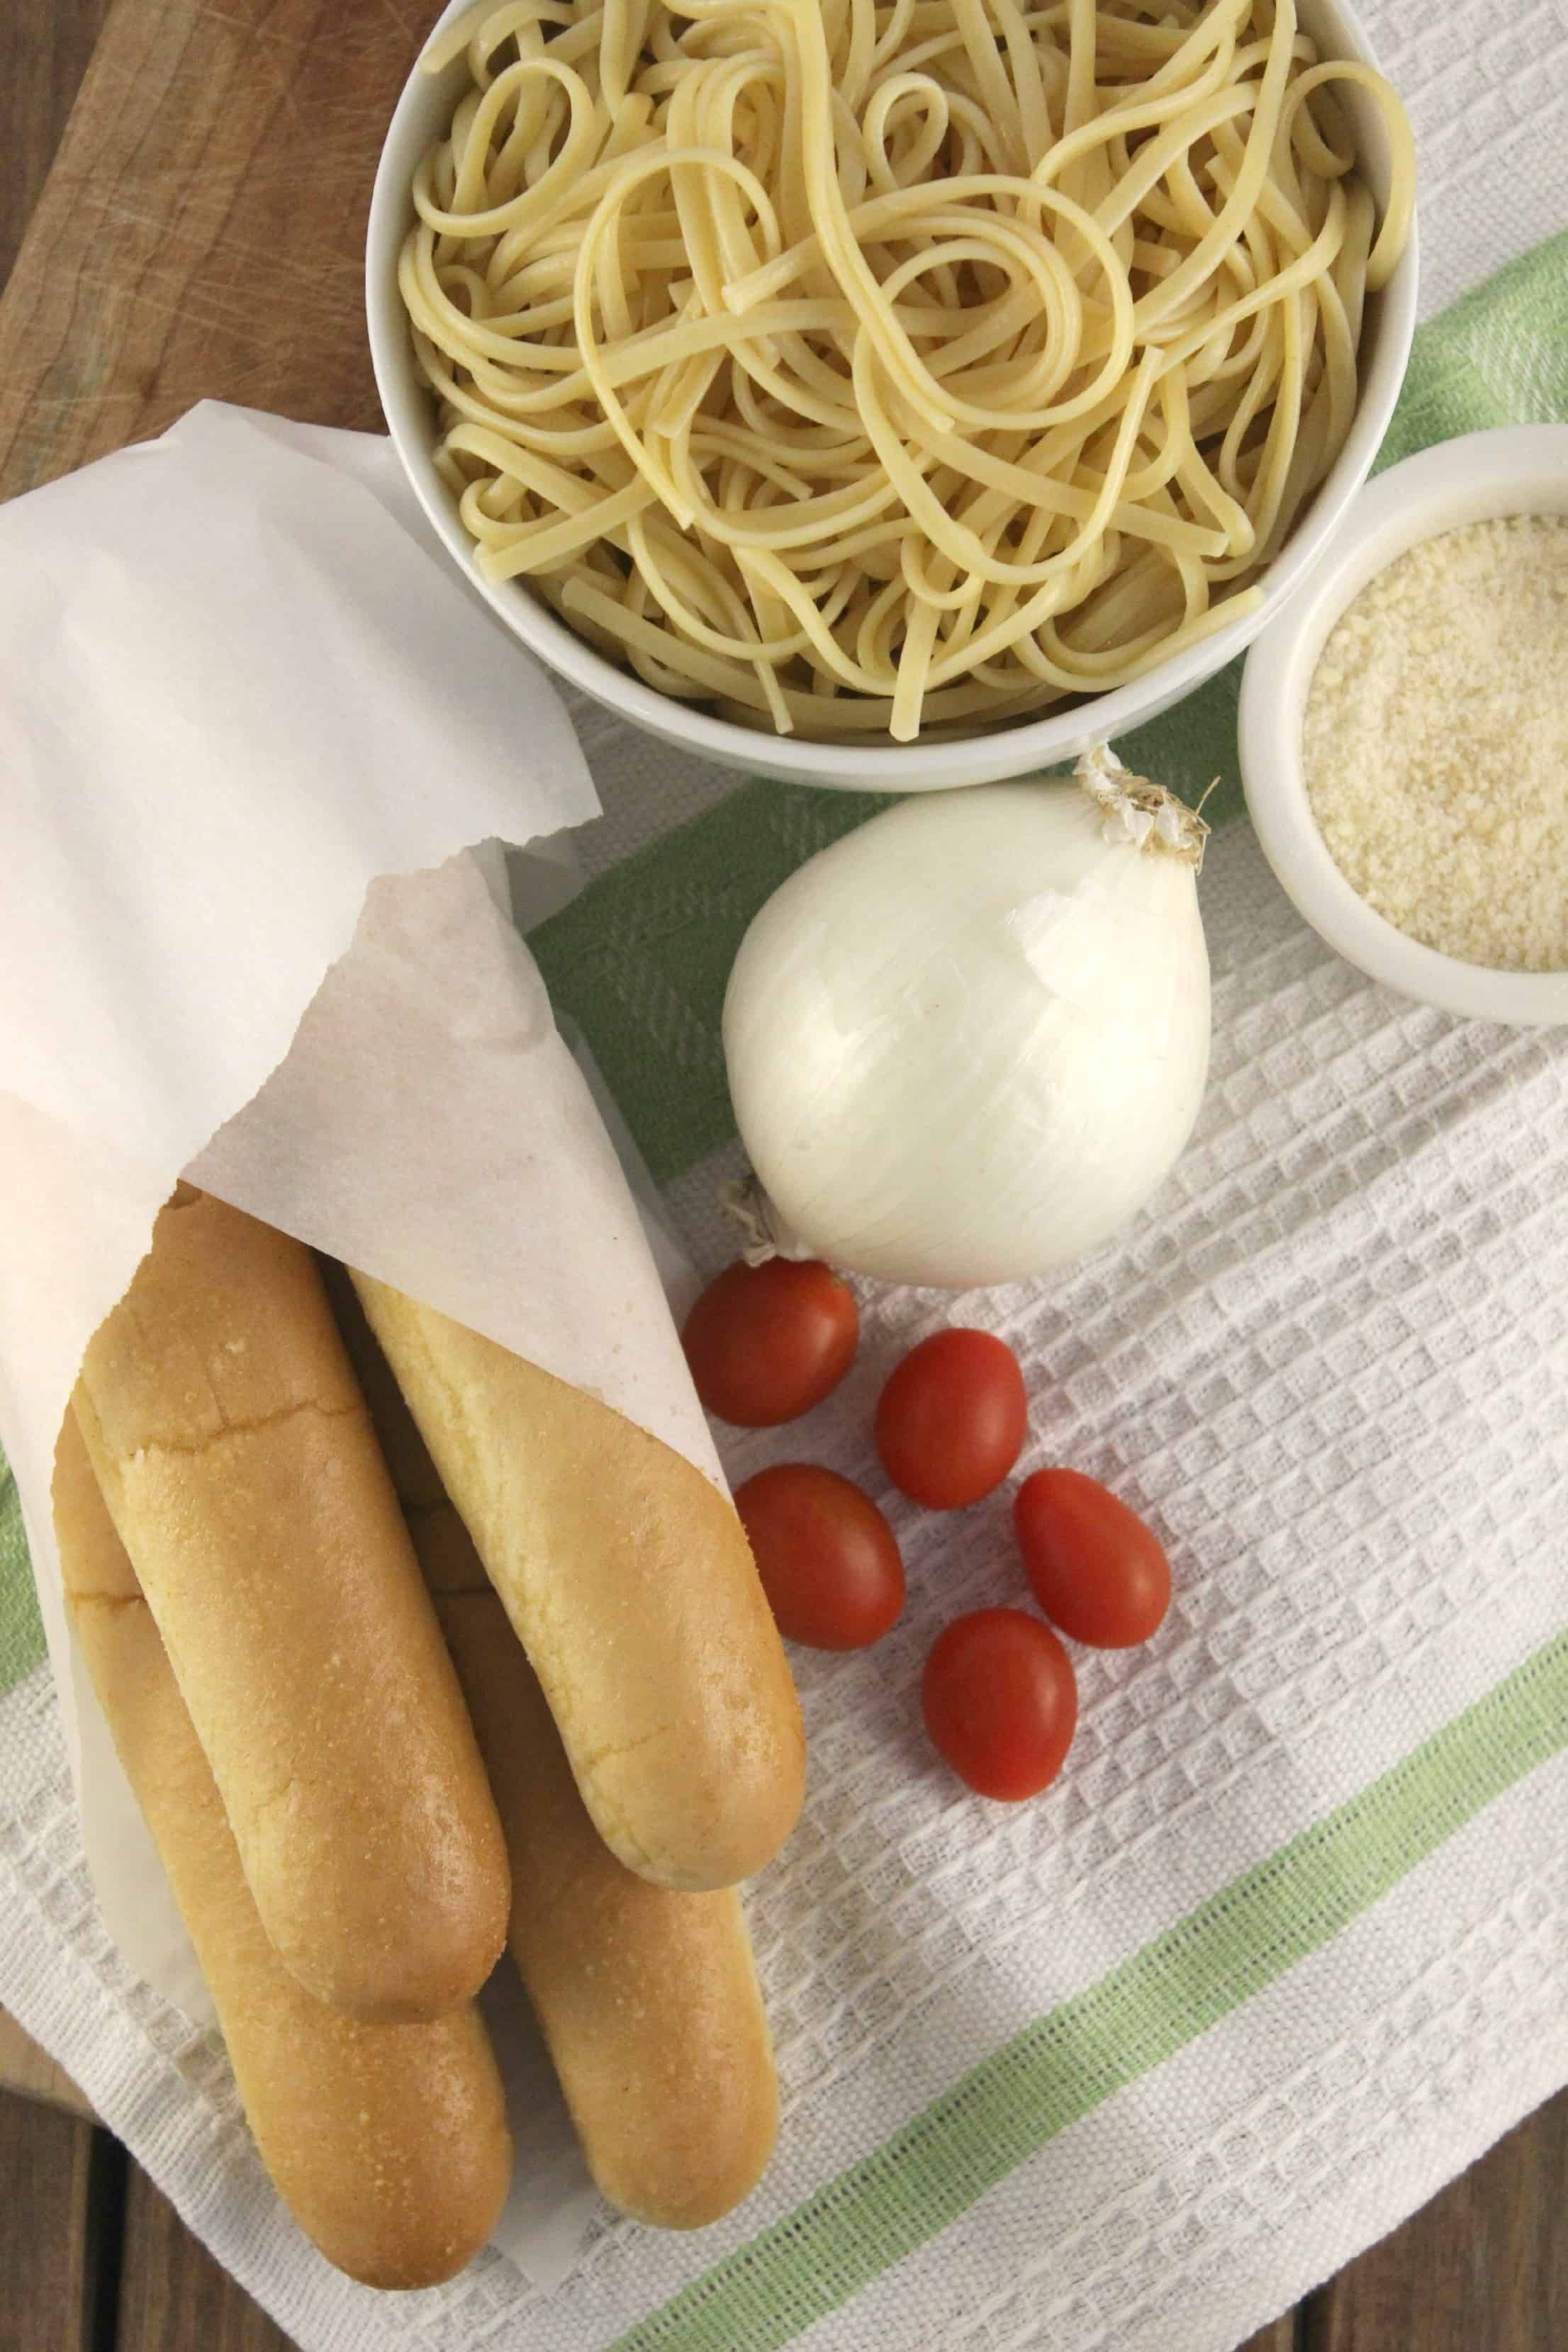 You can make your own Olive Garden dinner at home for much